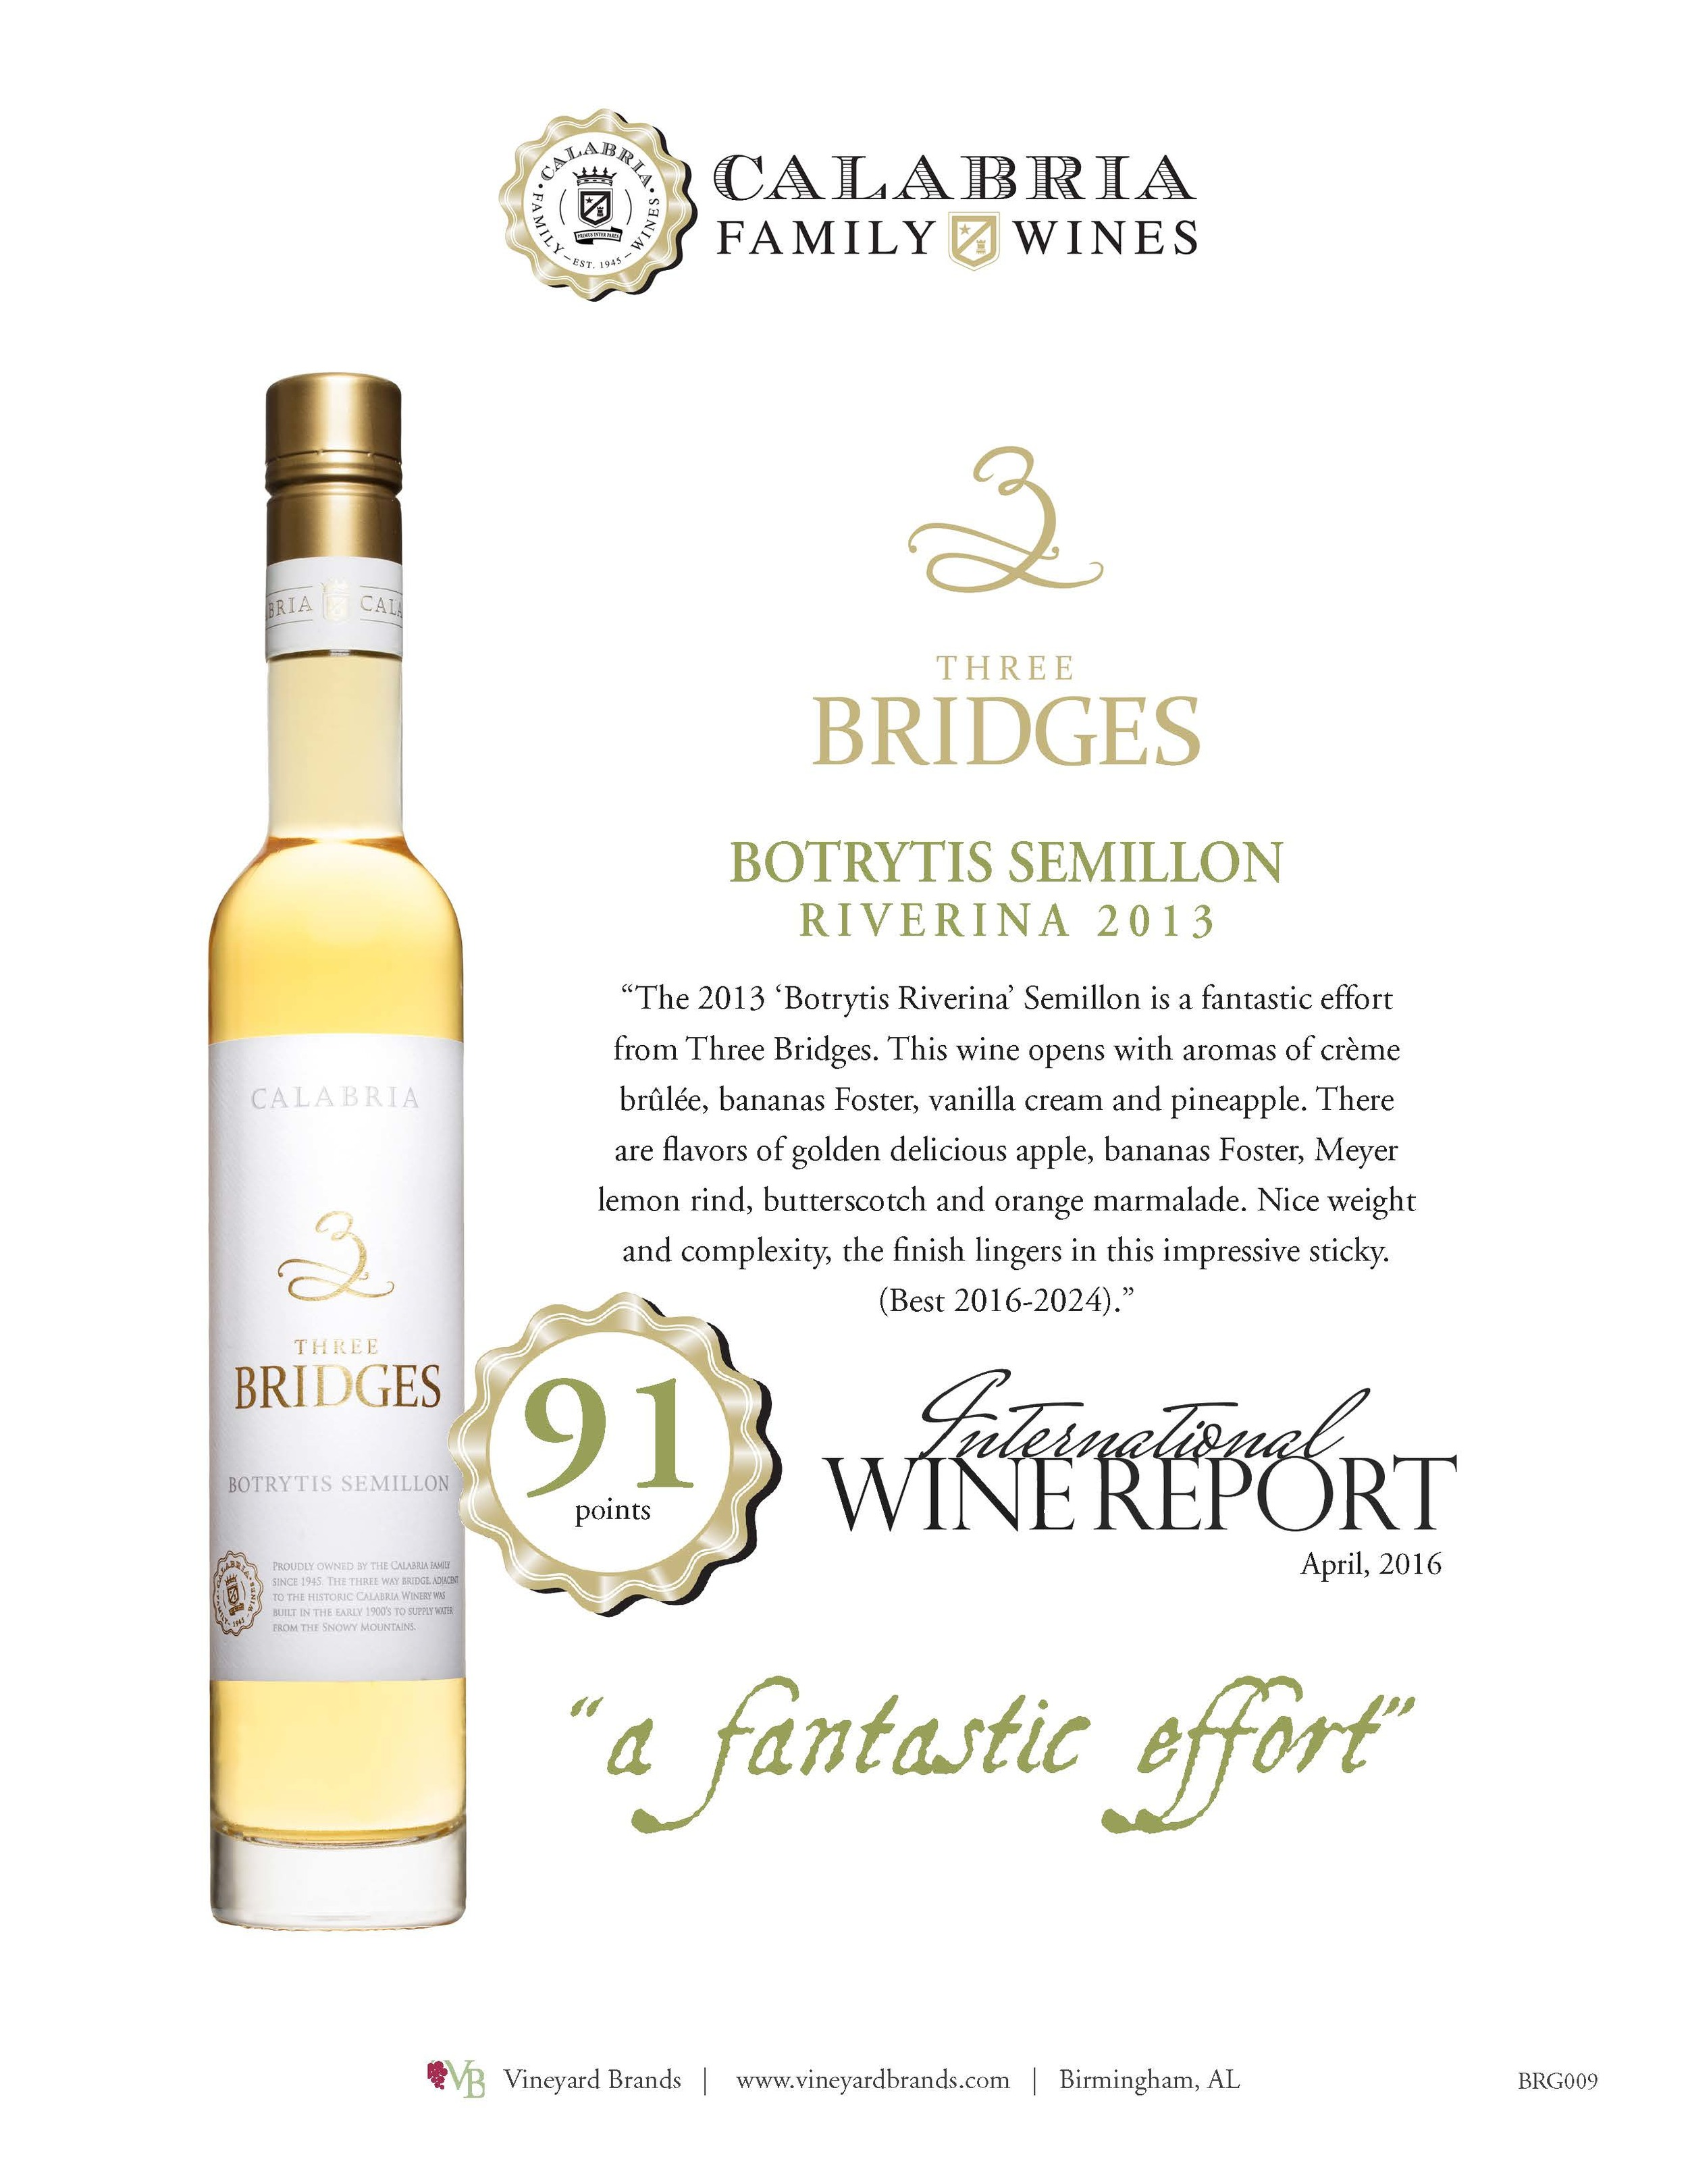 Three Bridges Botrytis Semillon Riverina 2013